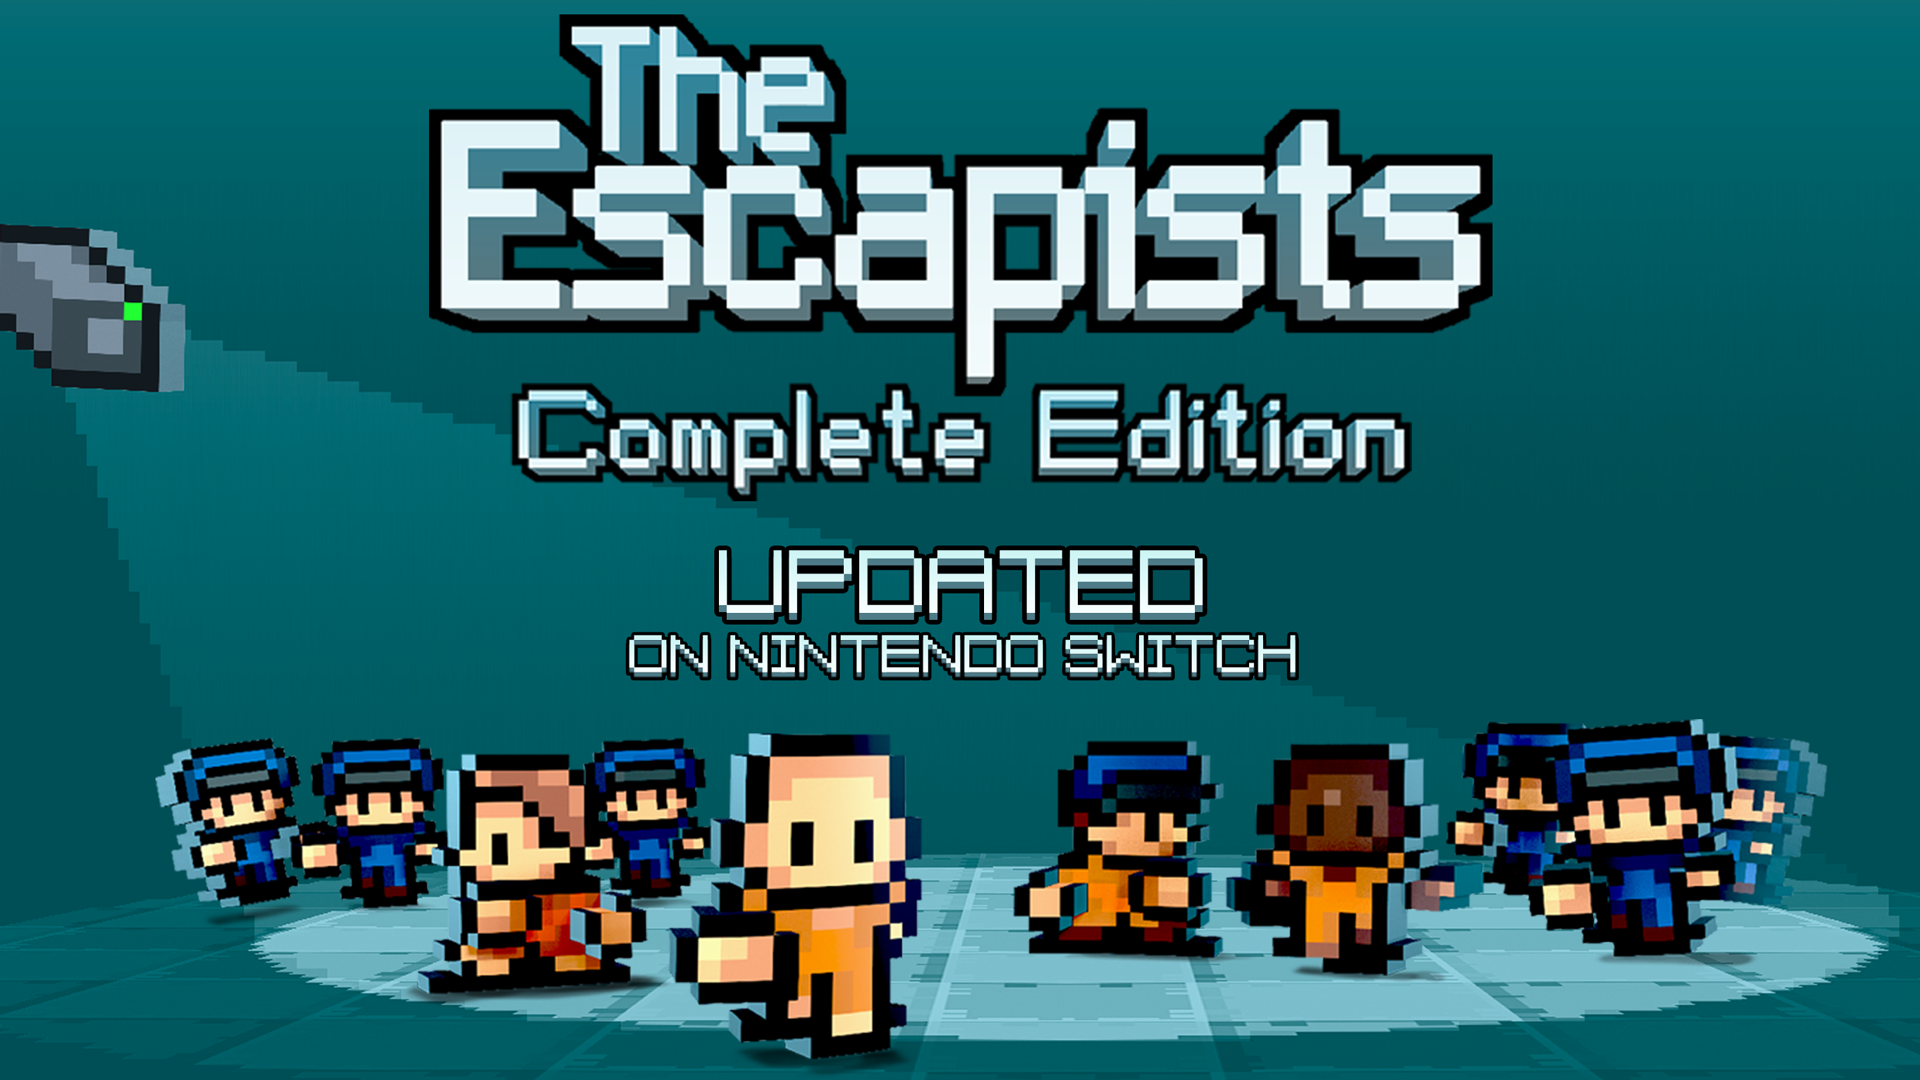 The Escapists: Complete Edition updated on Nintendo Switch